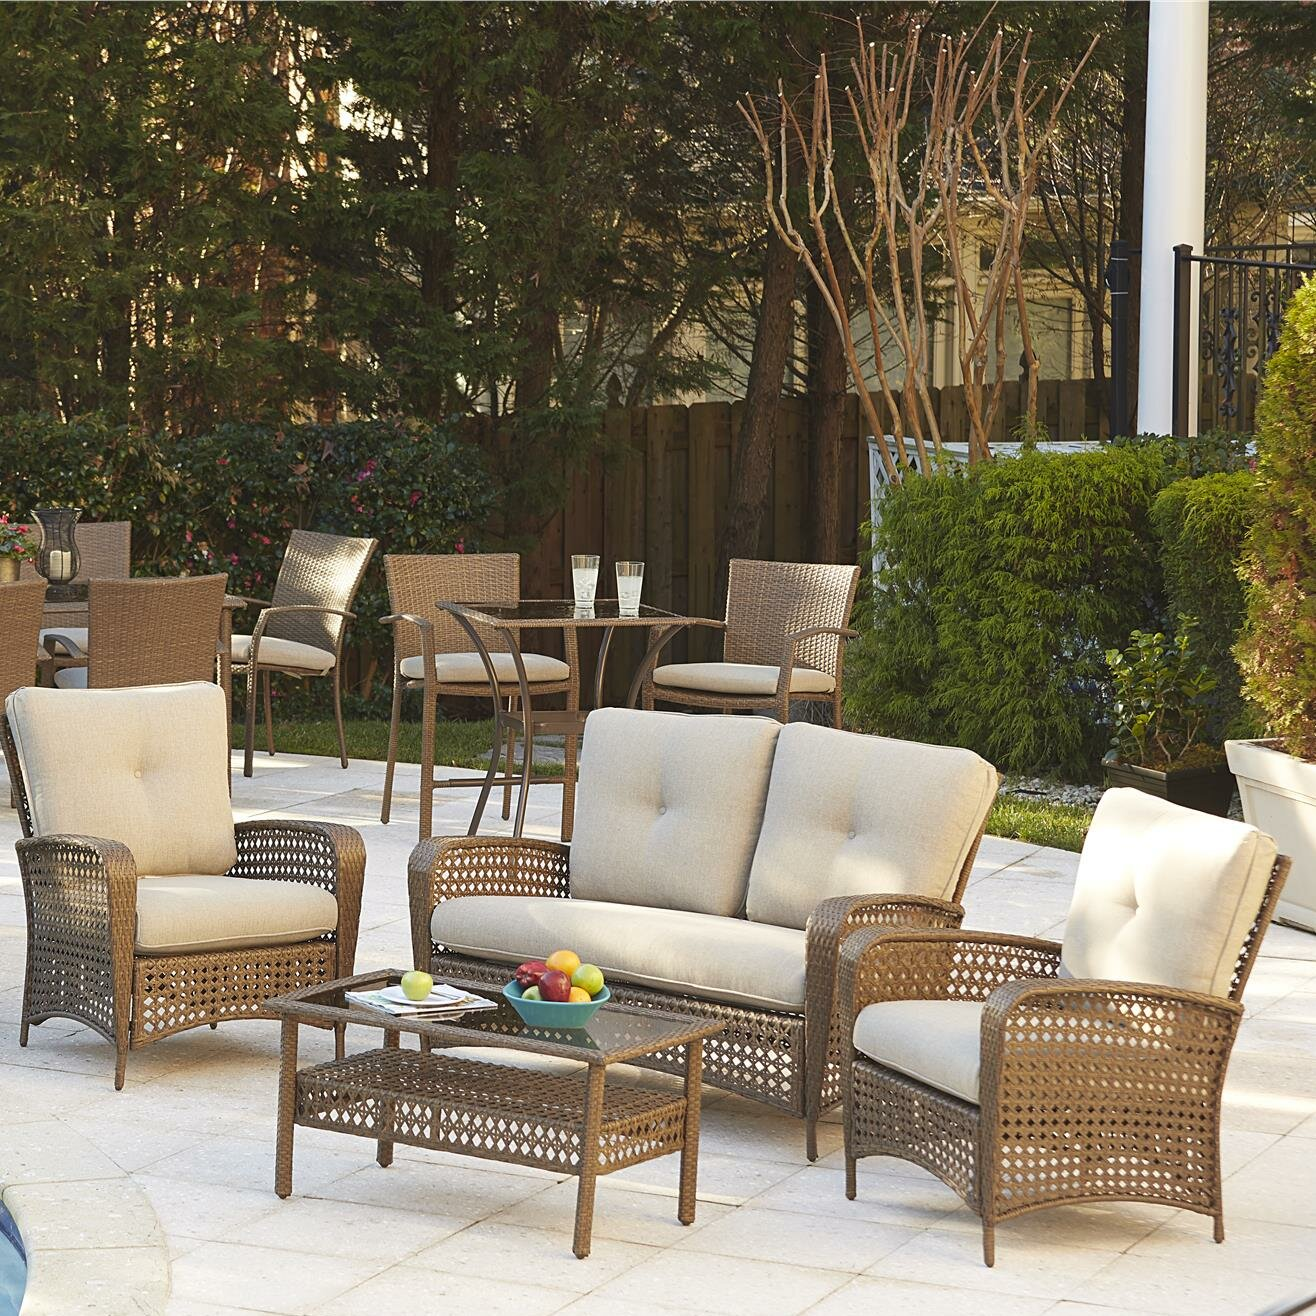 Indoor Wicker Furniture Sets | Wayfair